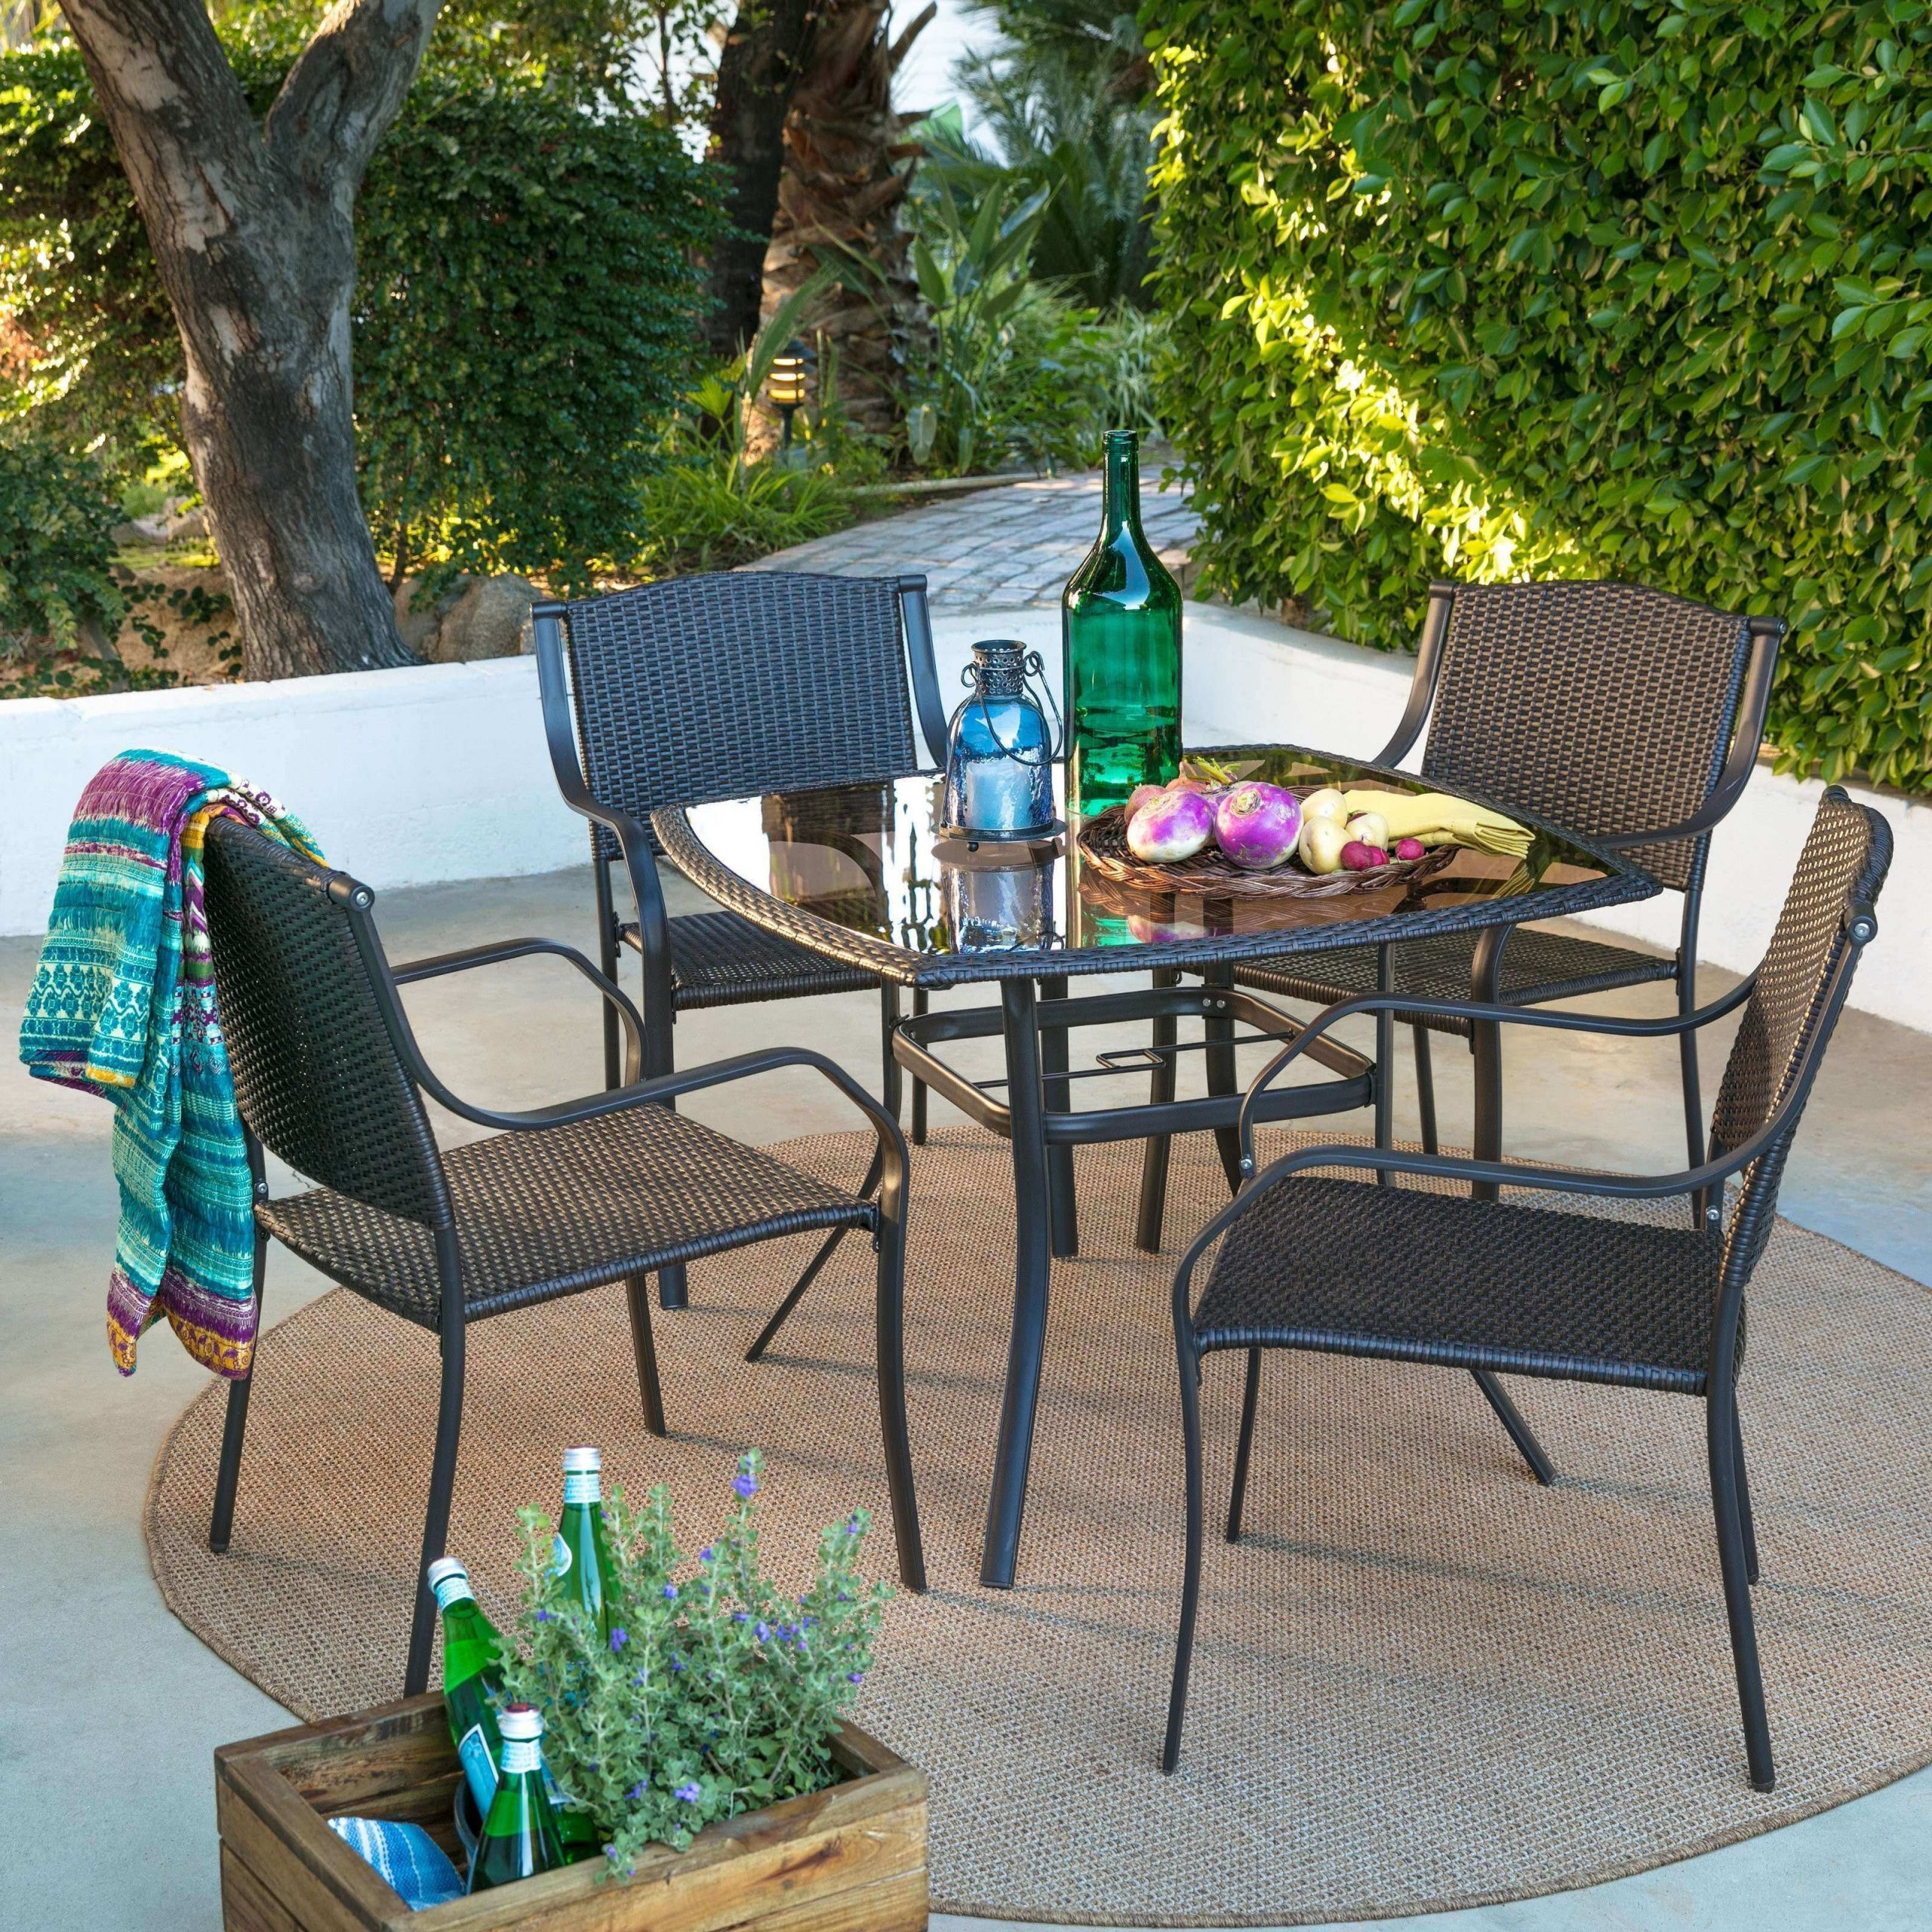 outside vase decoration of fresh outside decorating ideas garden ideas with coral coast patio furniture fresh wicker outdoor sofa 0d patio inspiration outdoor garden decor ideas